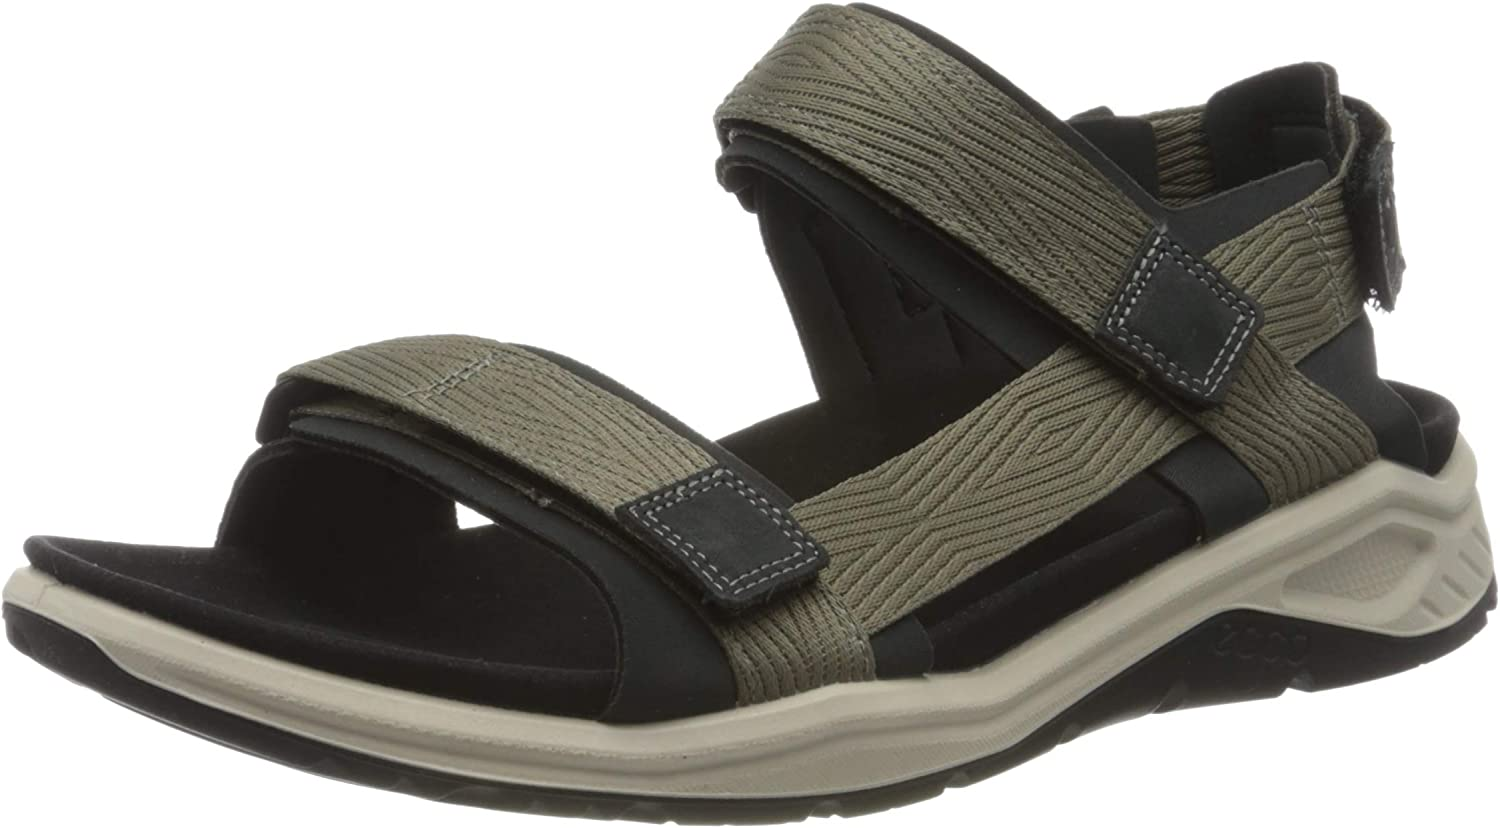 Max 68% OFF 67% OFF of fixed price ECCO Men's X-trinsic Textile Strap Sandal